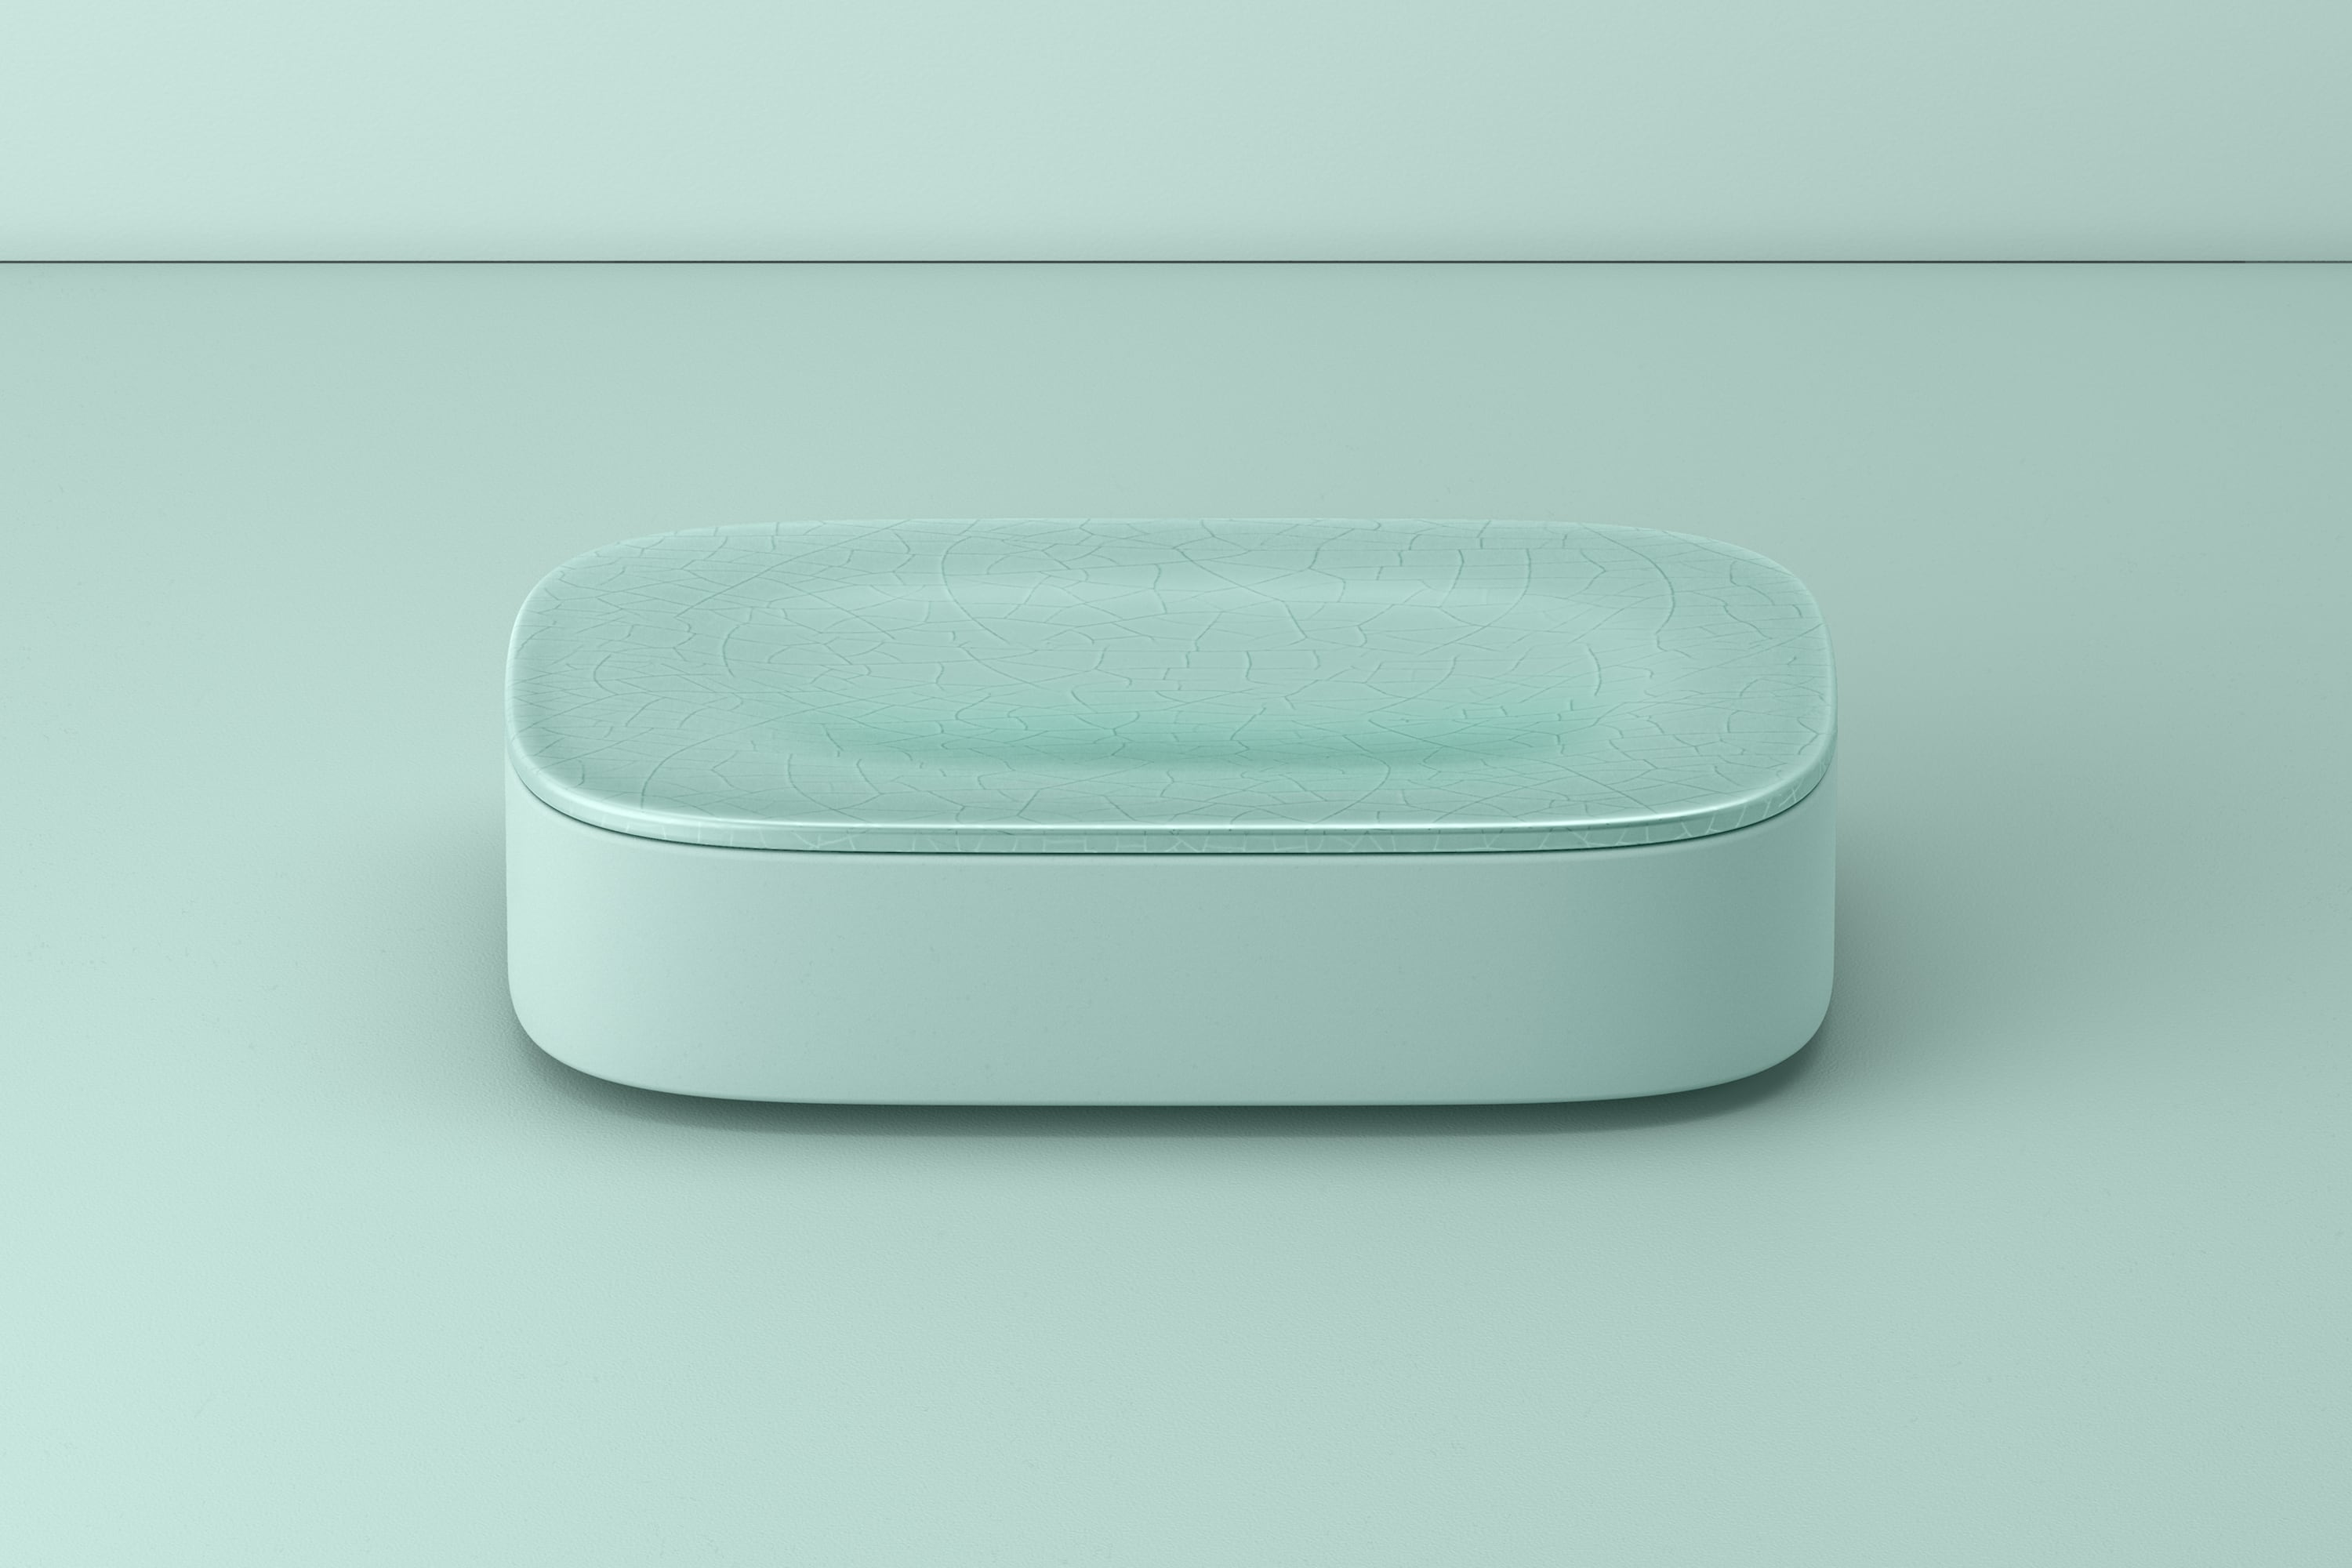 Blond-Design-Agency-Cosmetics-Packaging-Sustainable-Eco-Deodorant-Dish-07